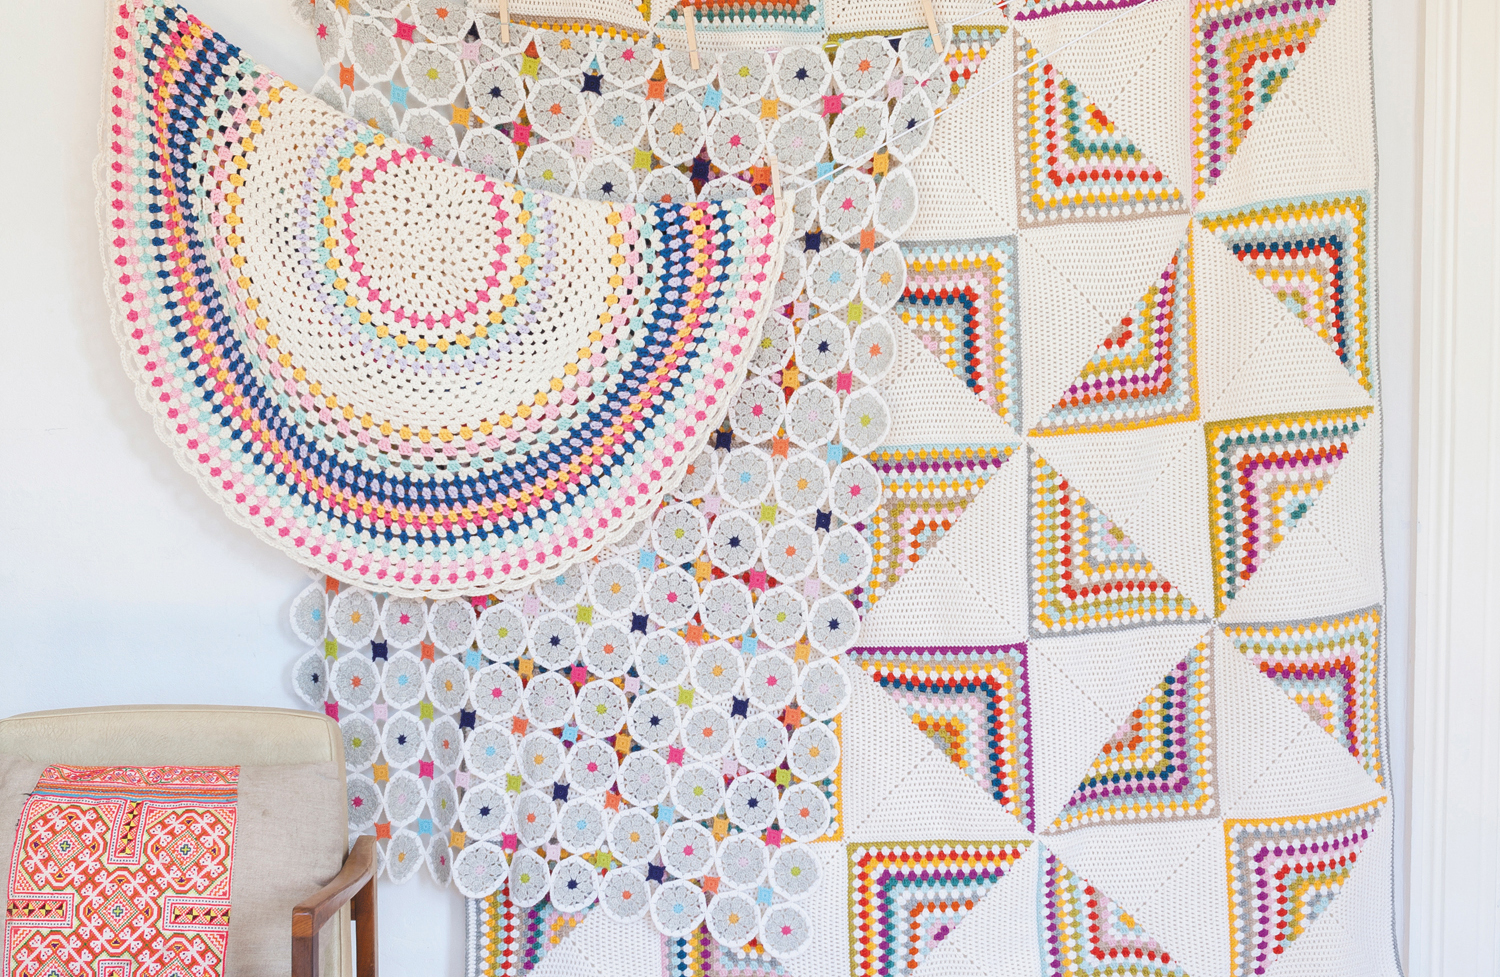 Blankets collection from Crochet Home by Emma Lamb | Crochet designs and styling by Emma Lamb / Photography by Jason M Jenkins